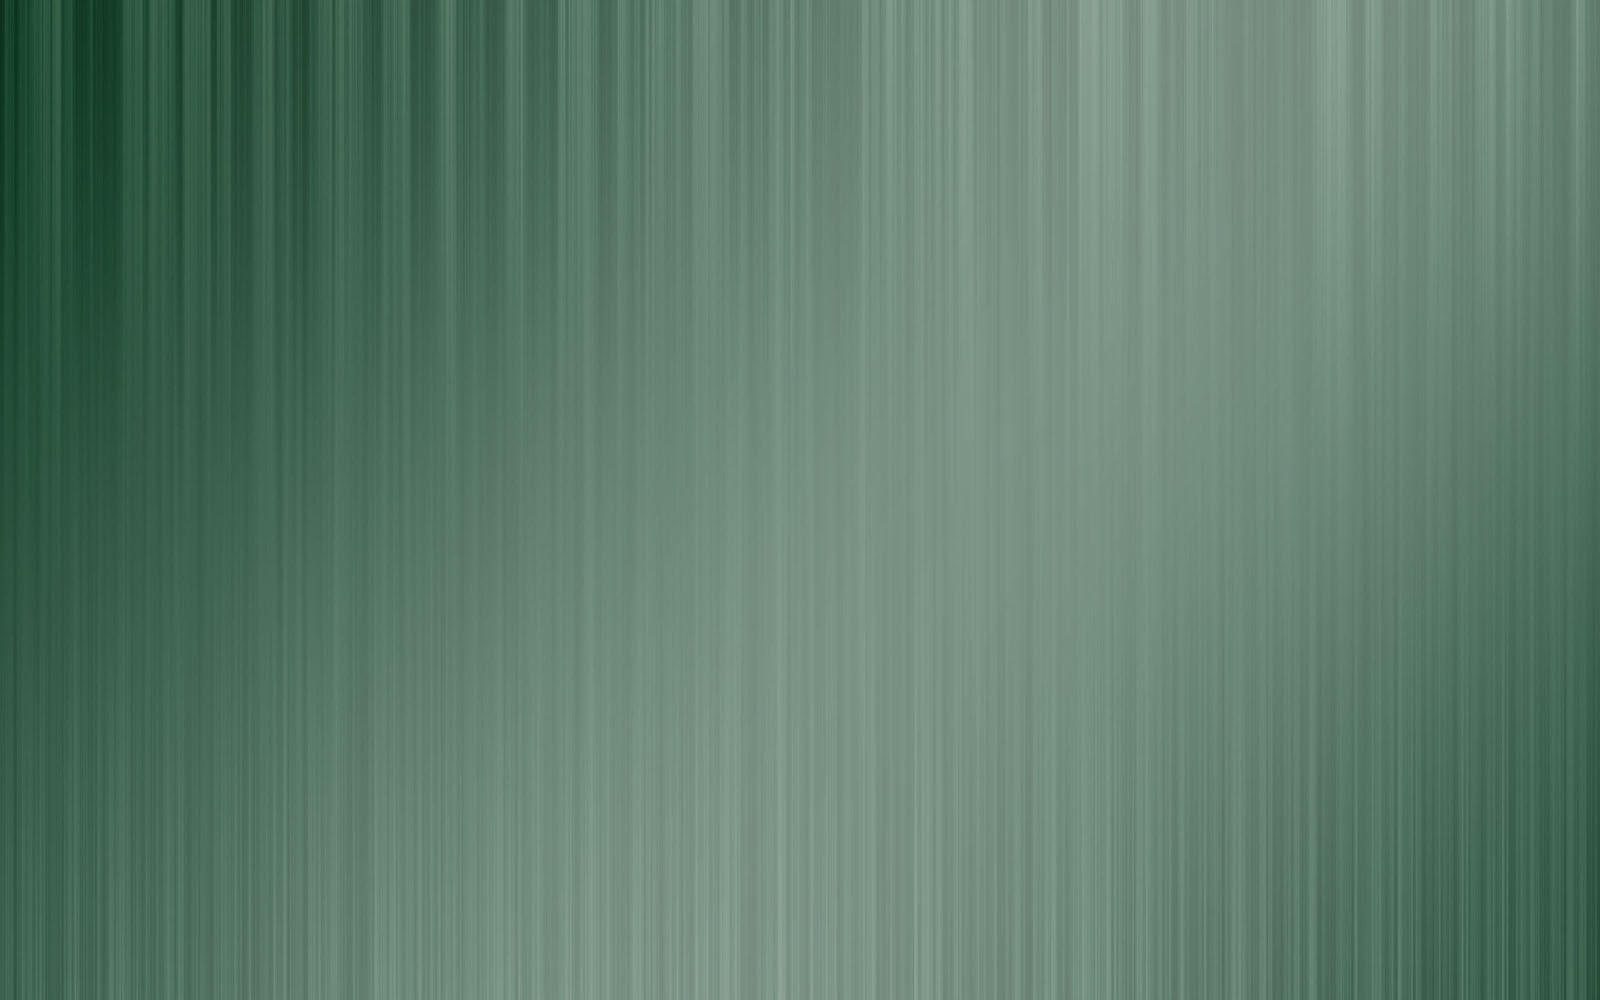 Background color 1552